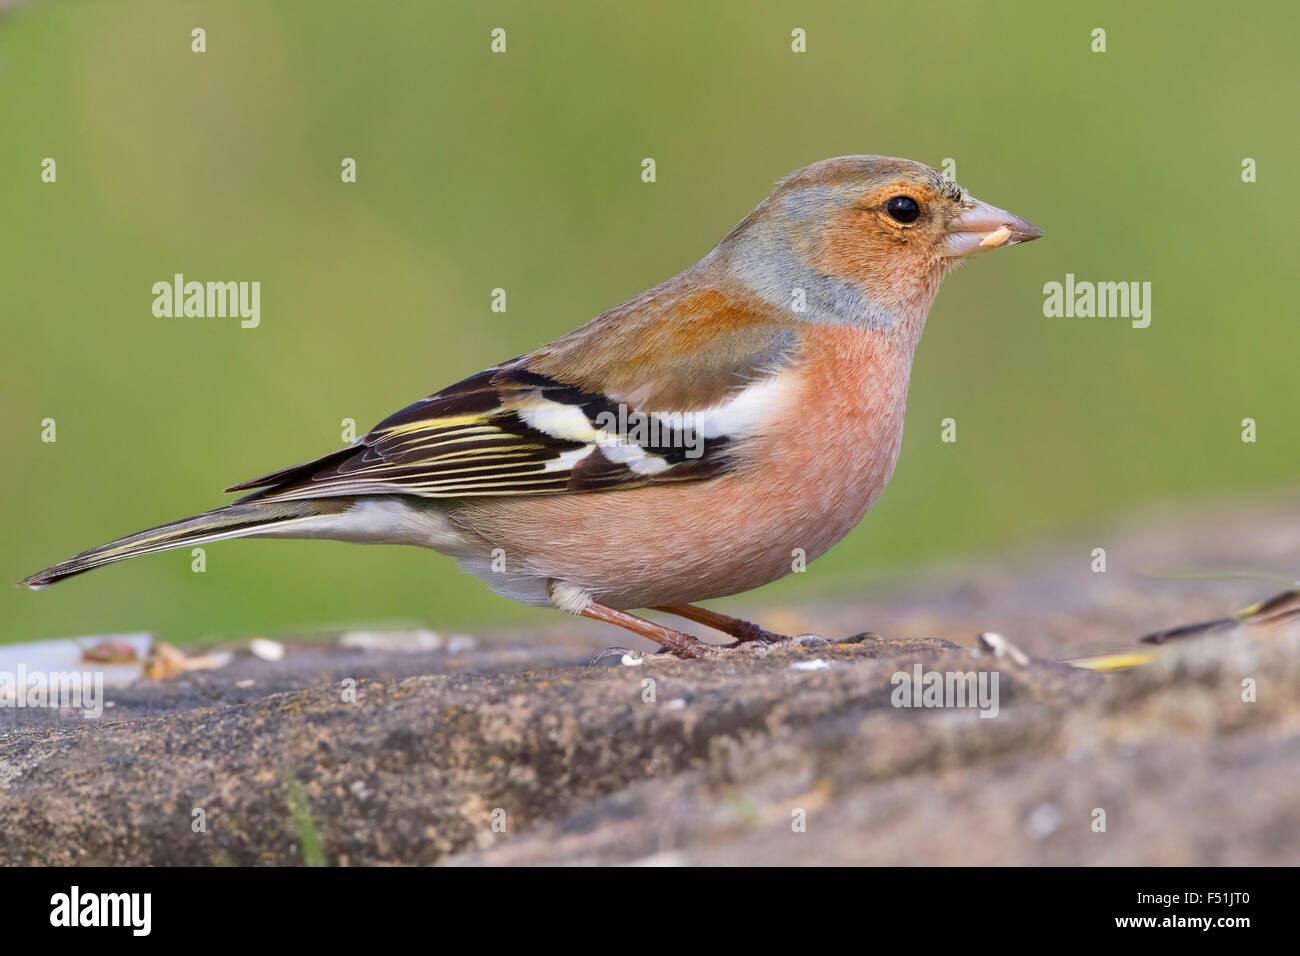 Common Chaffinch, Adult male feeding on seeds, Campania, Italy (Fringilla coelebs) - Stock Image